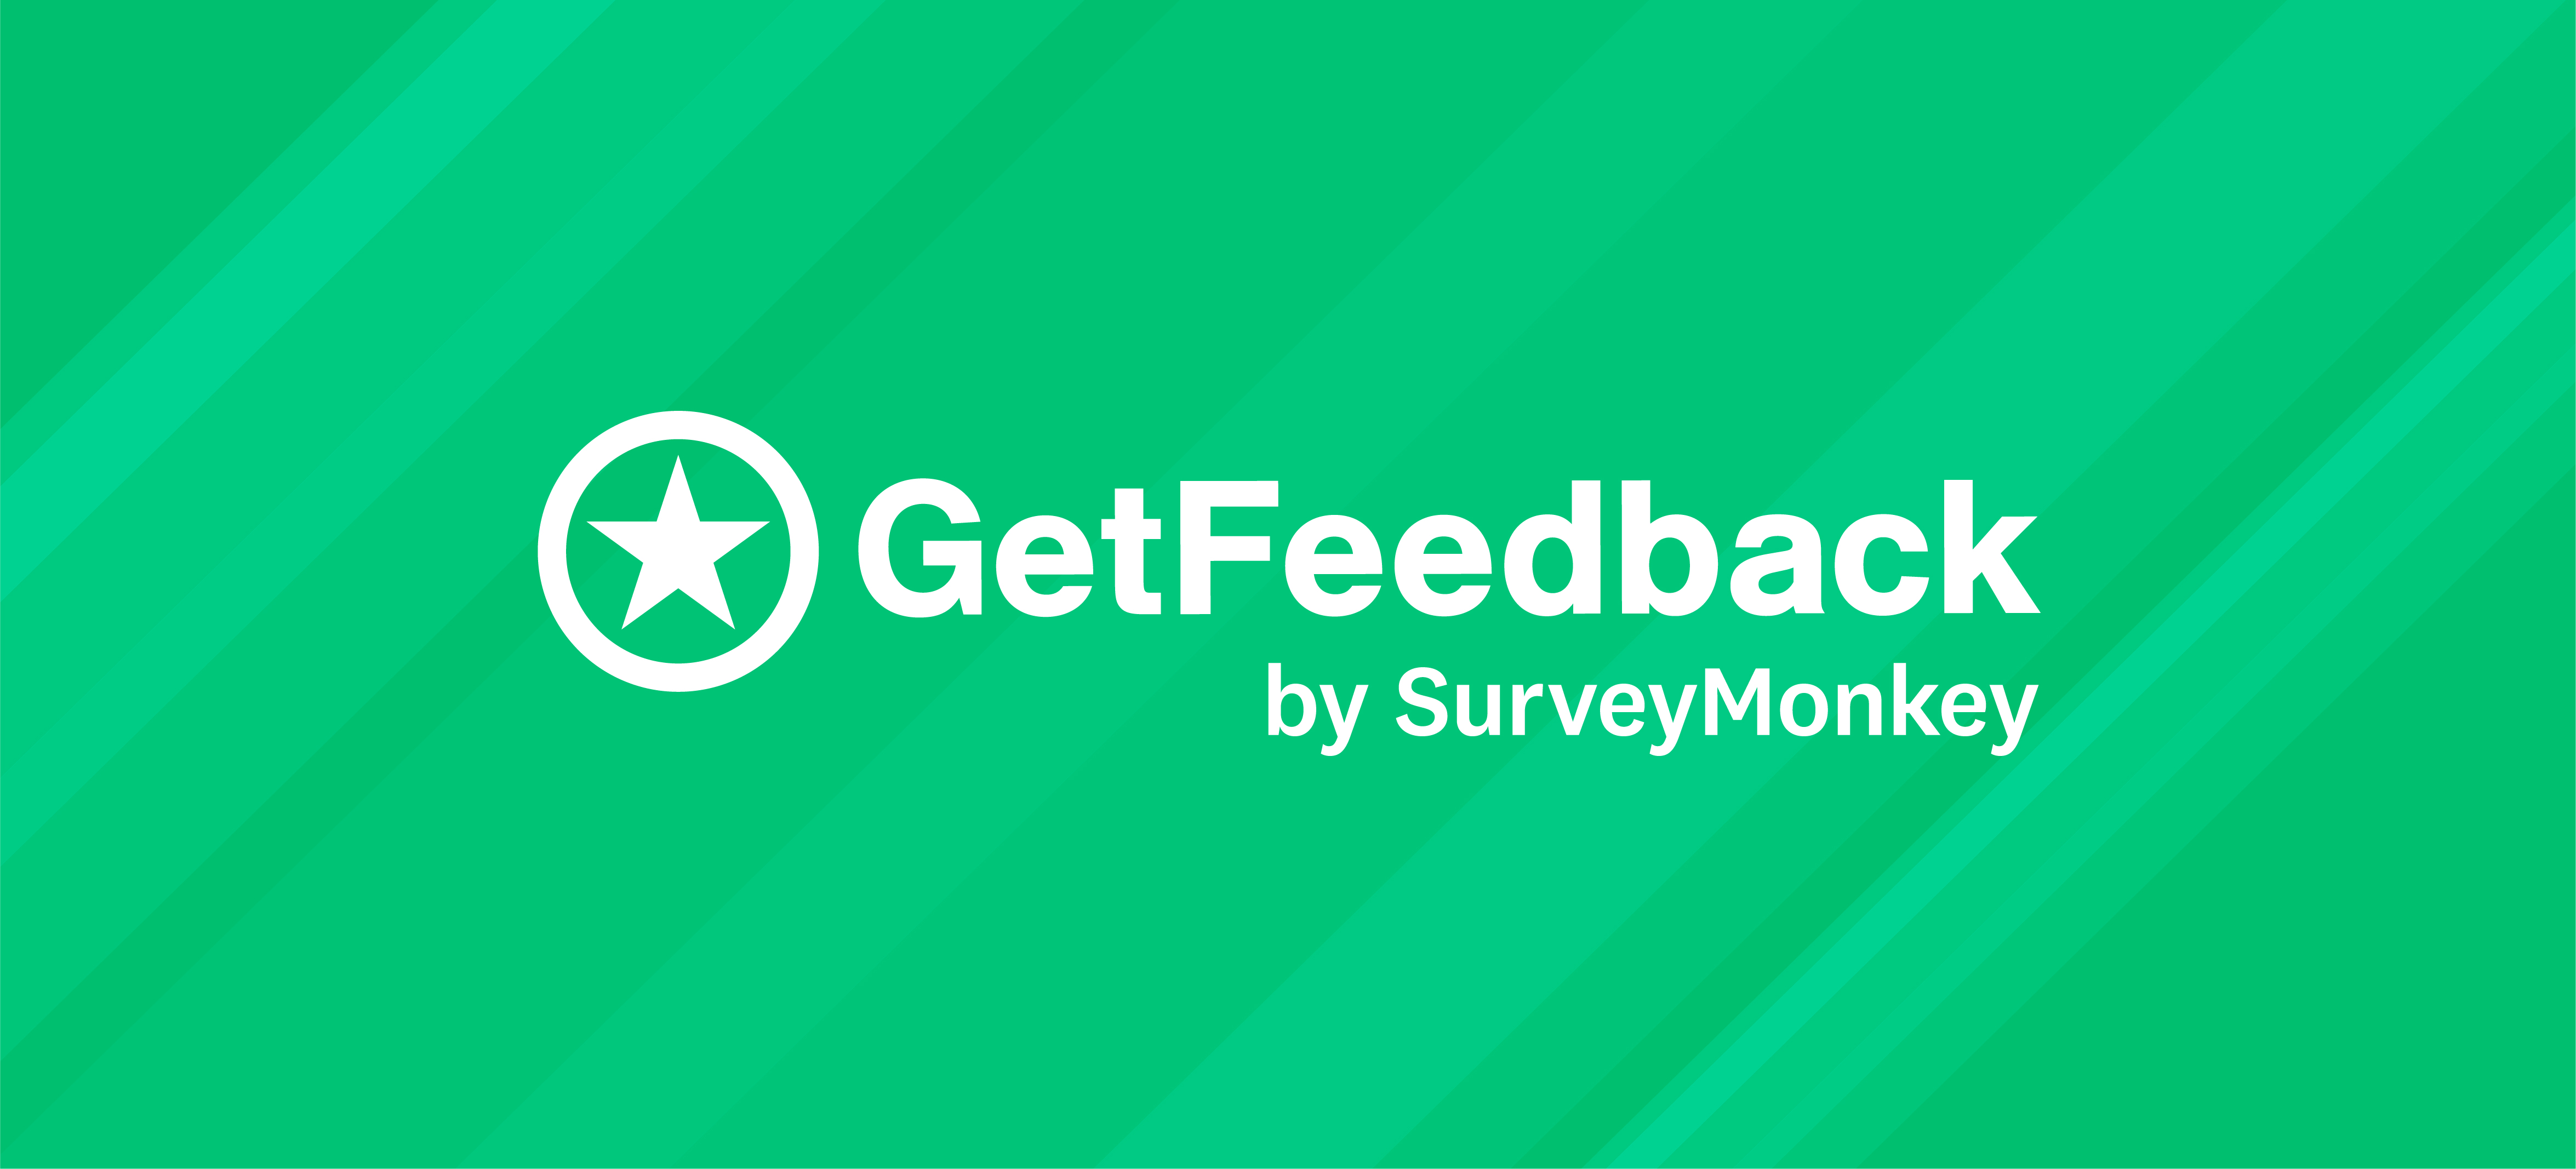 SurveyMonkey welcomes Salesforce® CX leader GetFeedback to the family